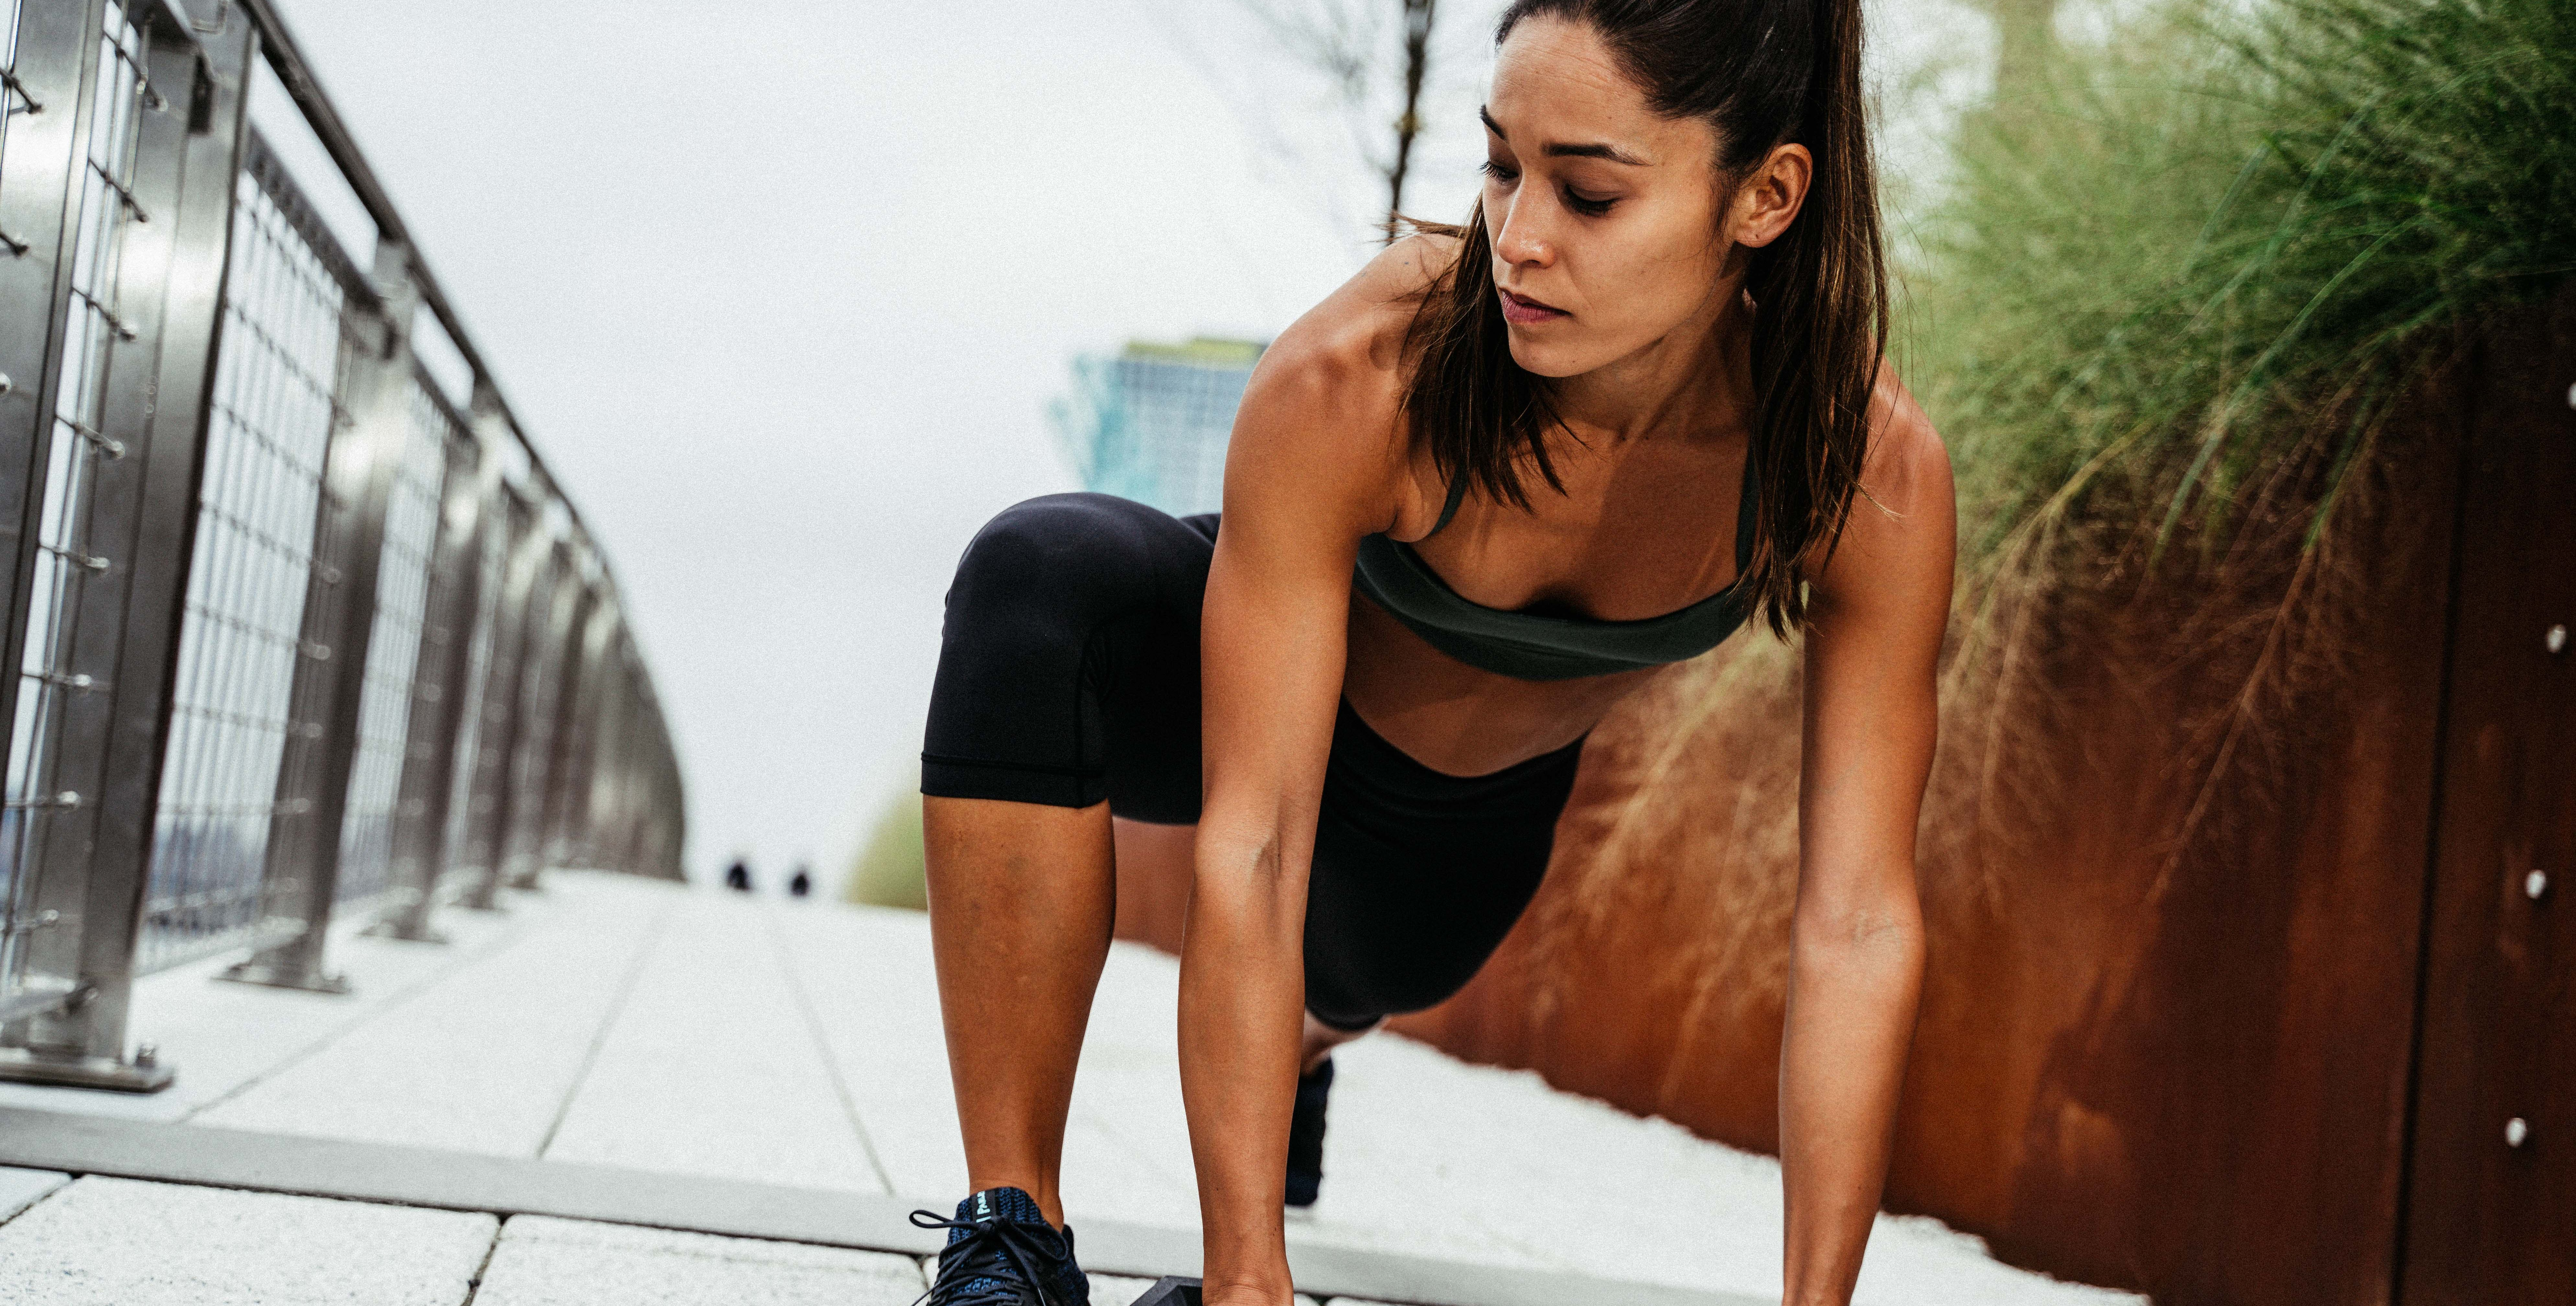 Try Her Move - SoulCycle's Charlee Atkins Shares Best Exercise Moves